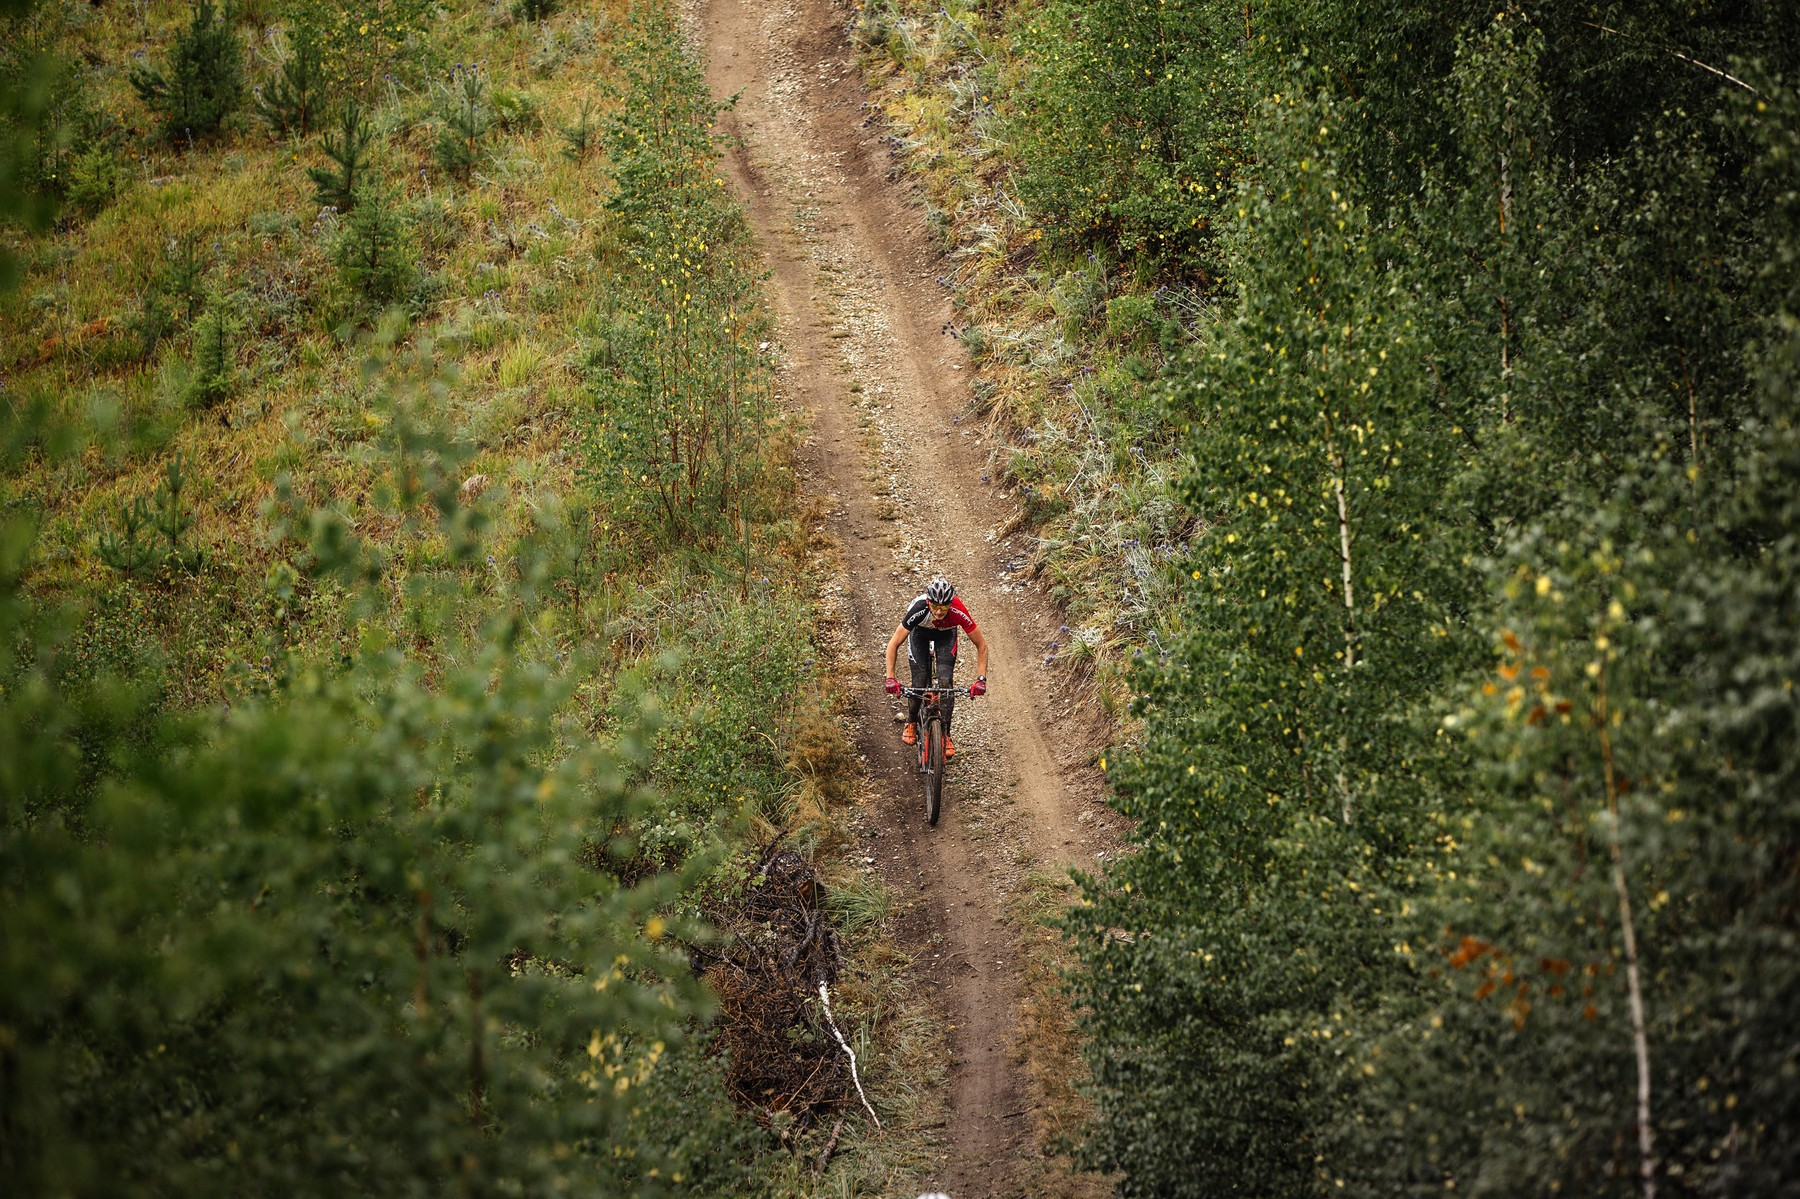 general plan rider a cyclist riding along a forest trail during Regional competitions on cross-country bicycle